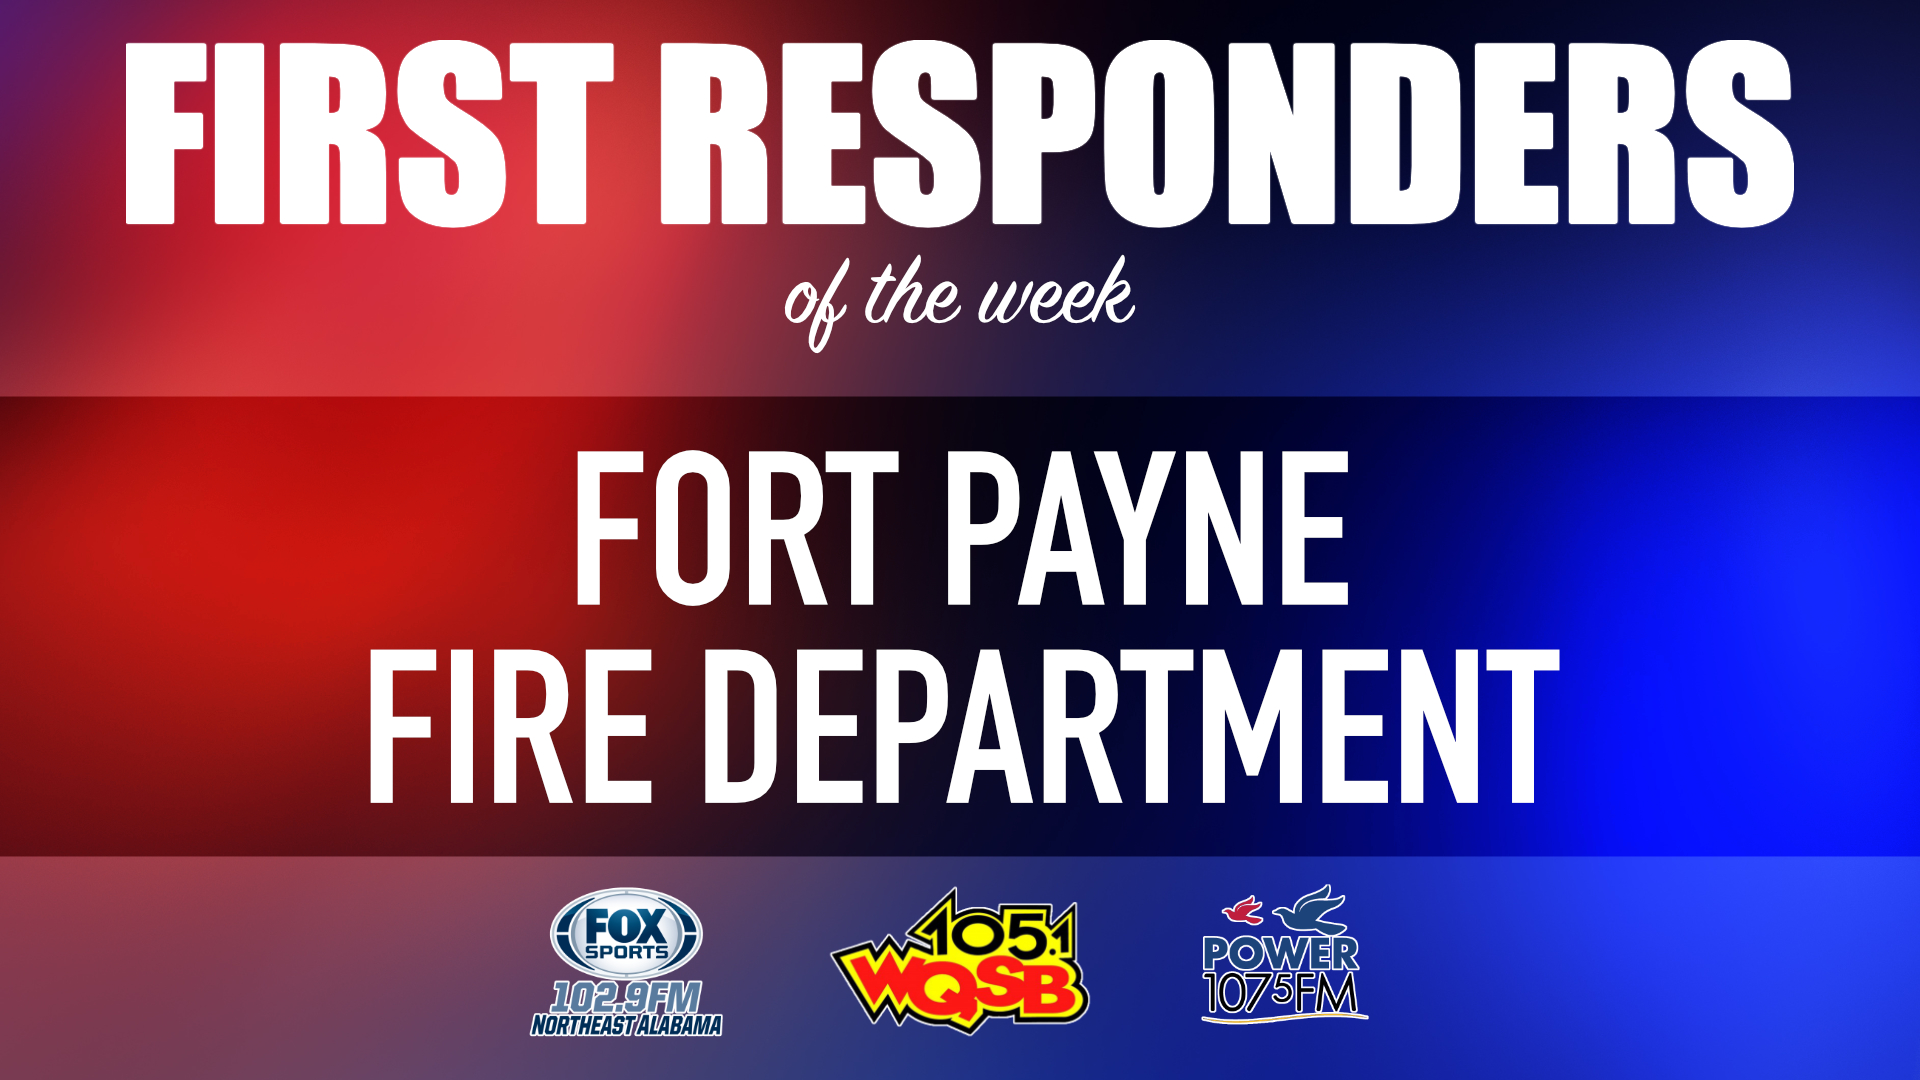 WQSB First Responders of the Week 2021 March 22, 2021